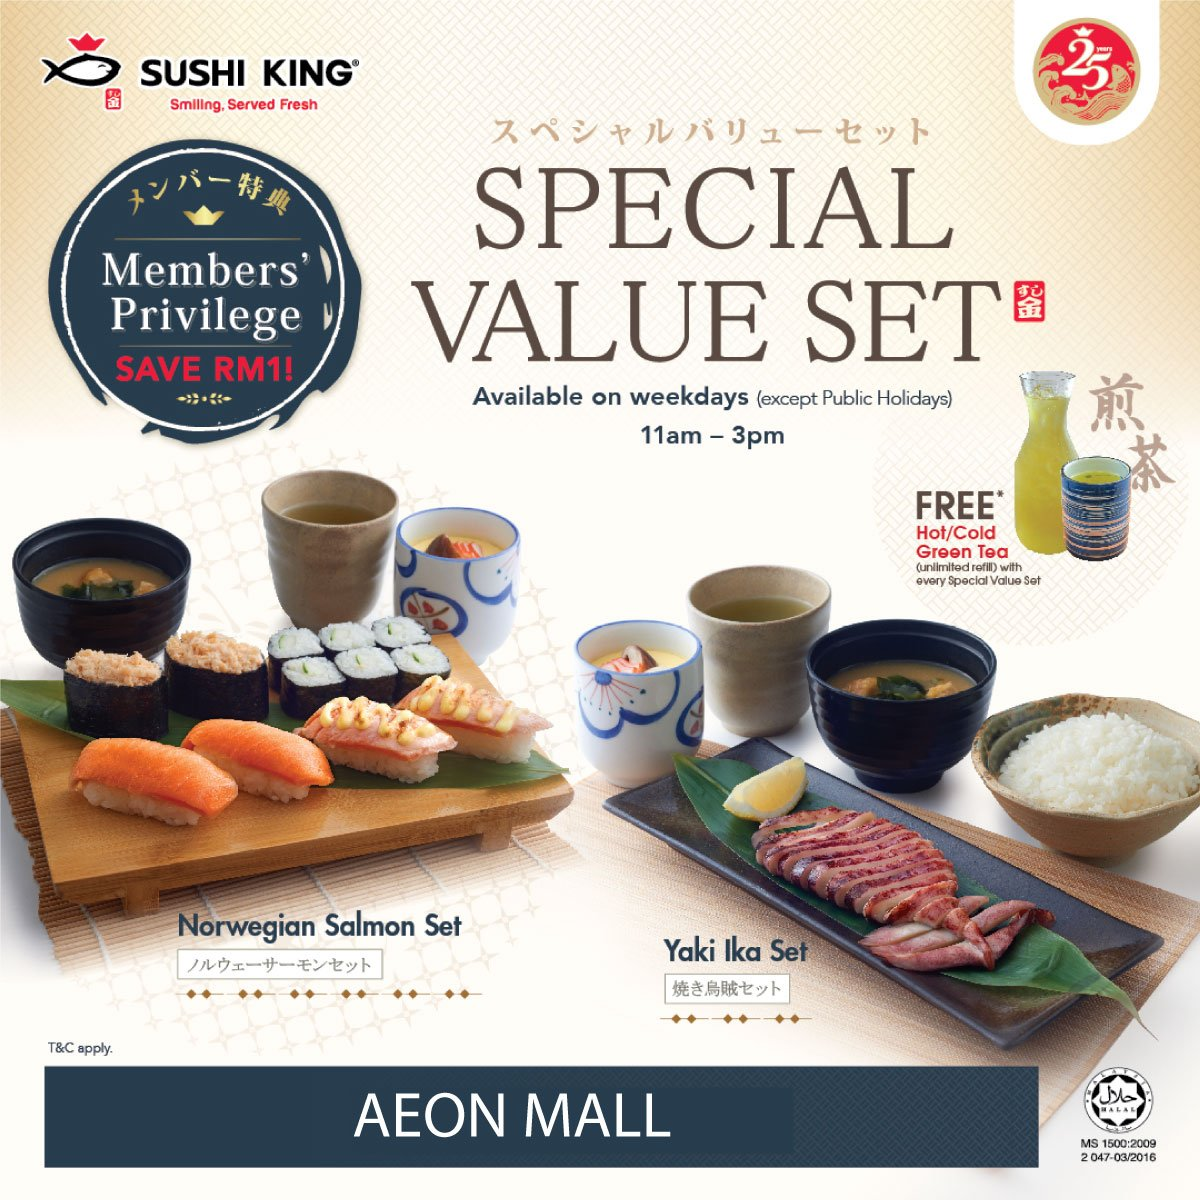 Sushi King: Special Value Set (Weekdays 11am - 3pm)